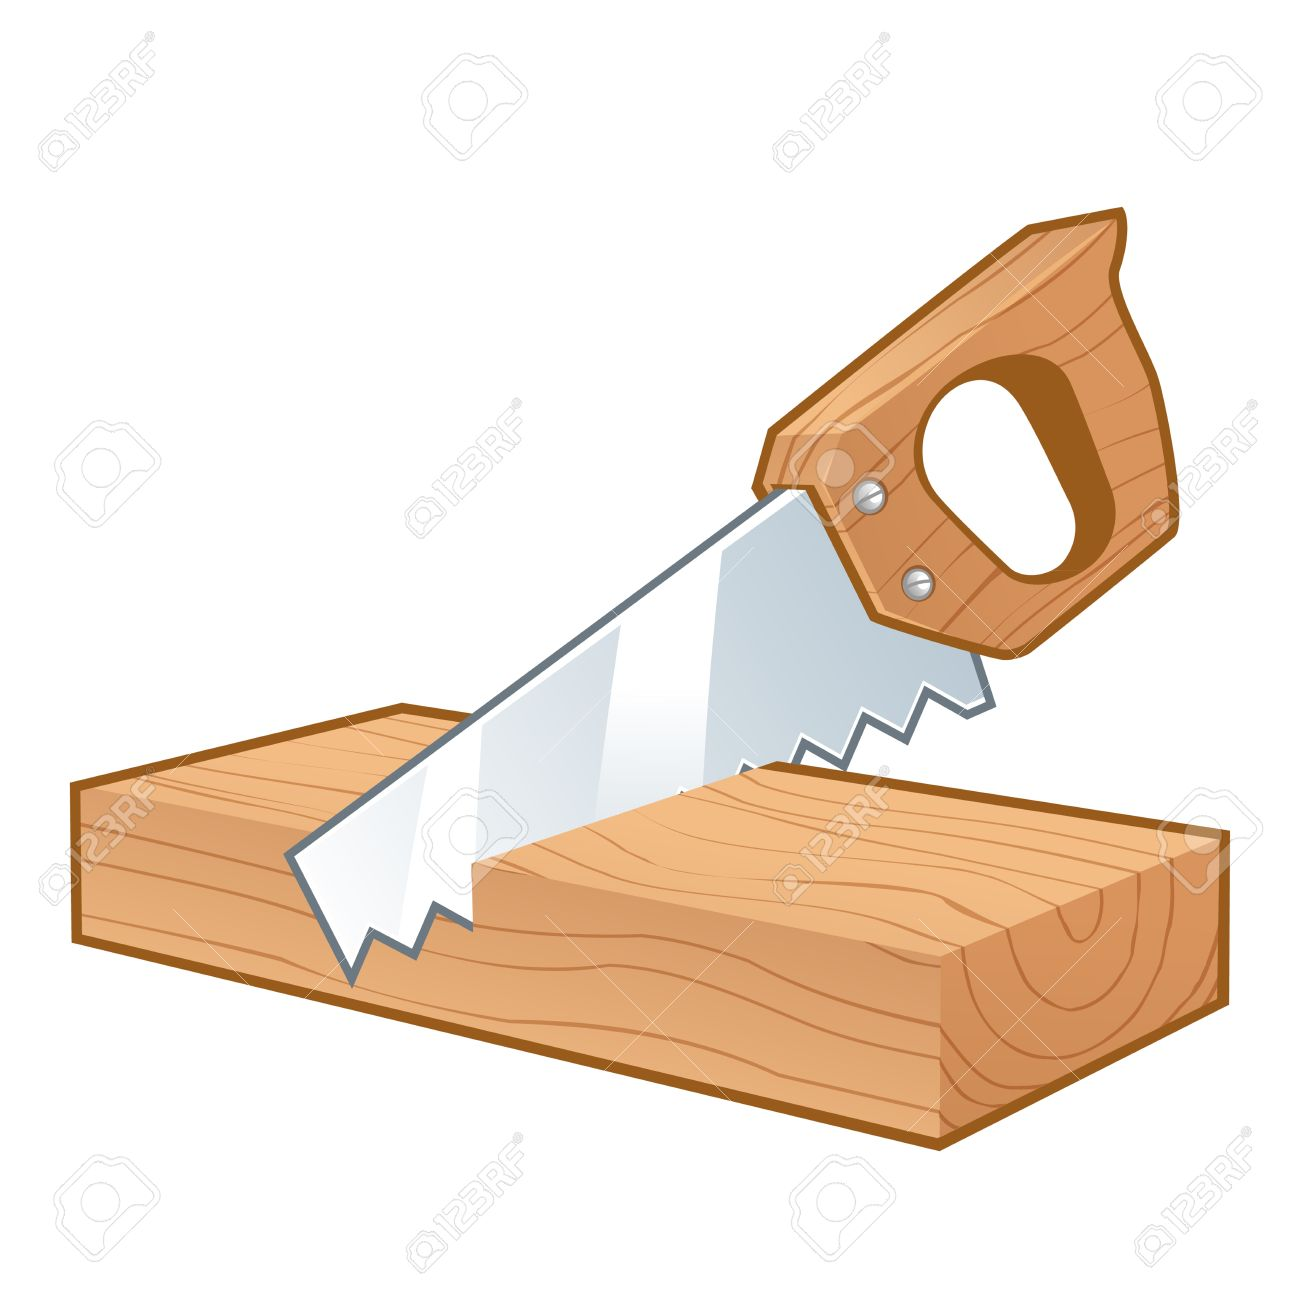 saw cutting a piece of wood isolated on white royalty free cliparts rh 123rf com vector wood grain free vector wood floor